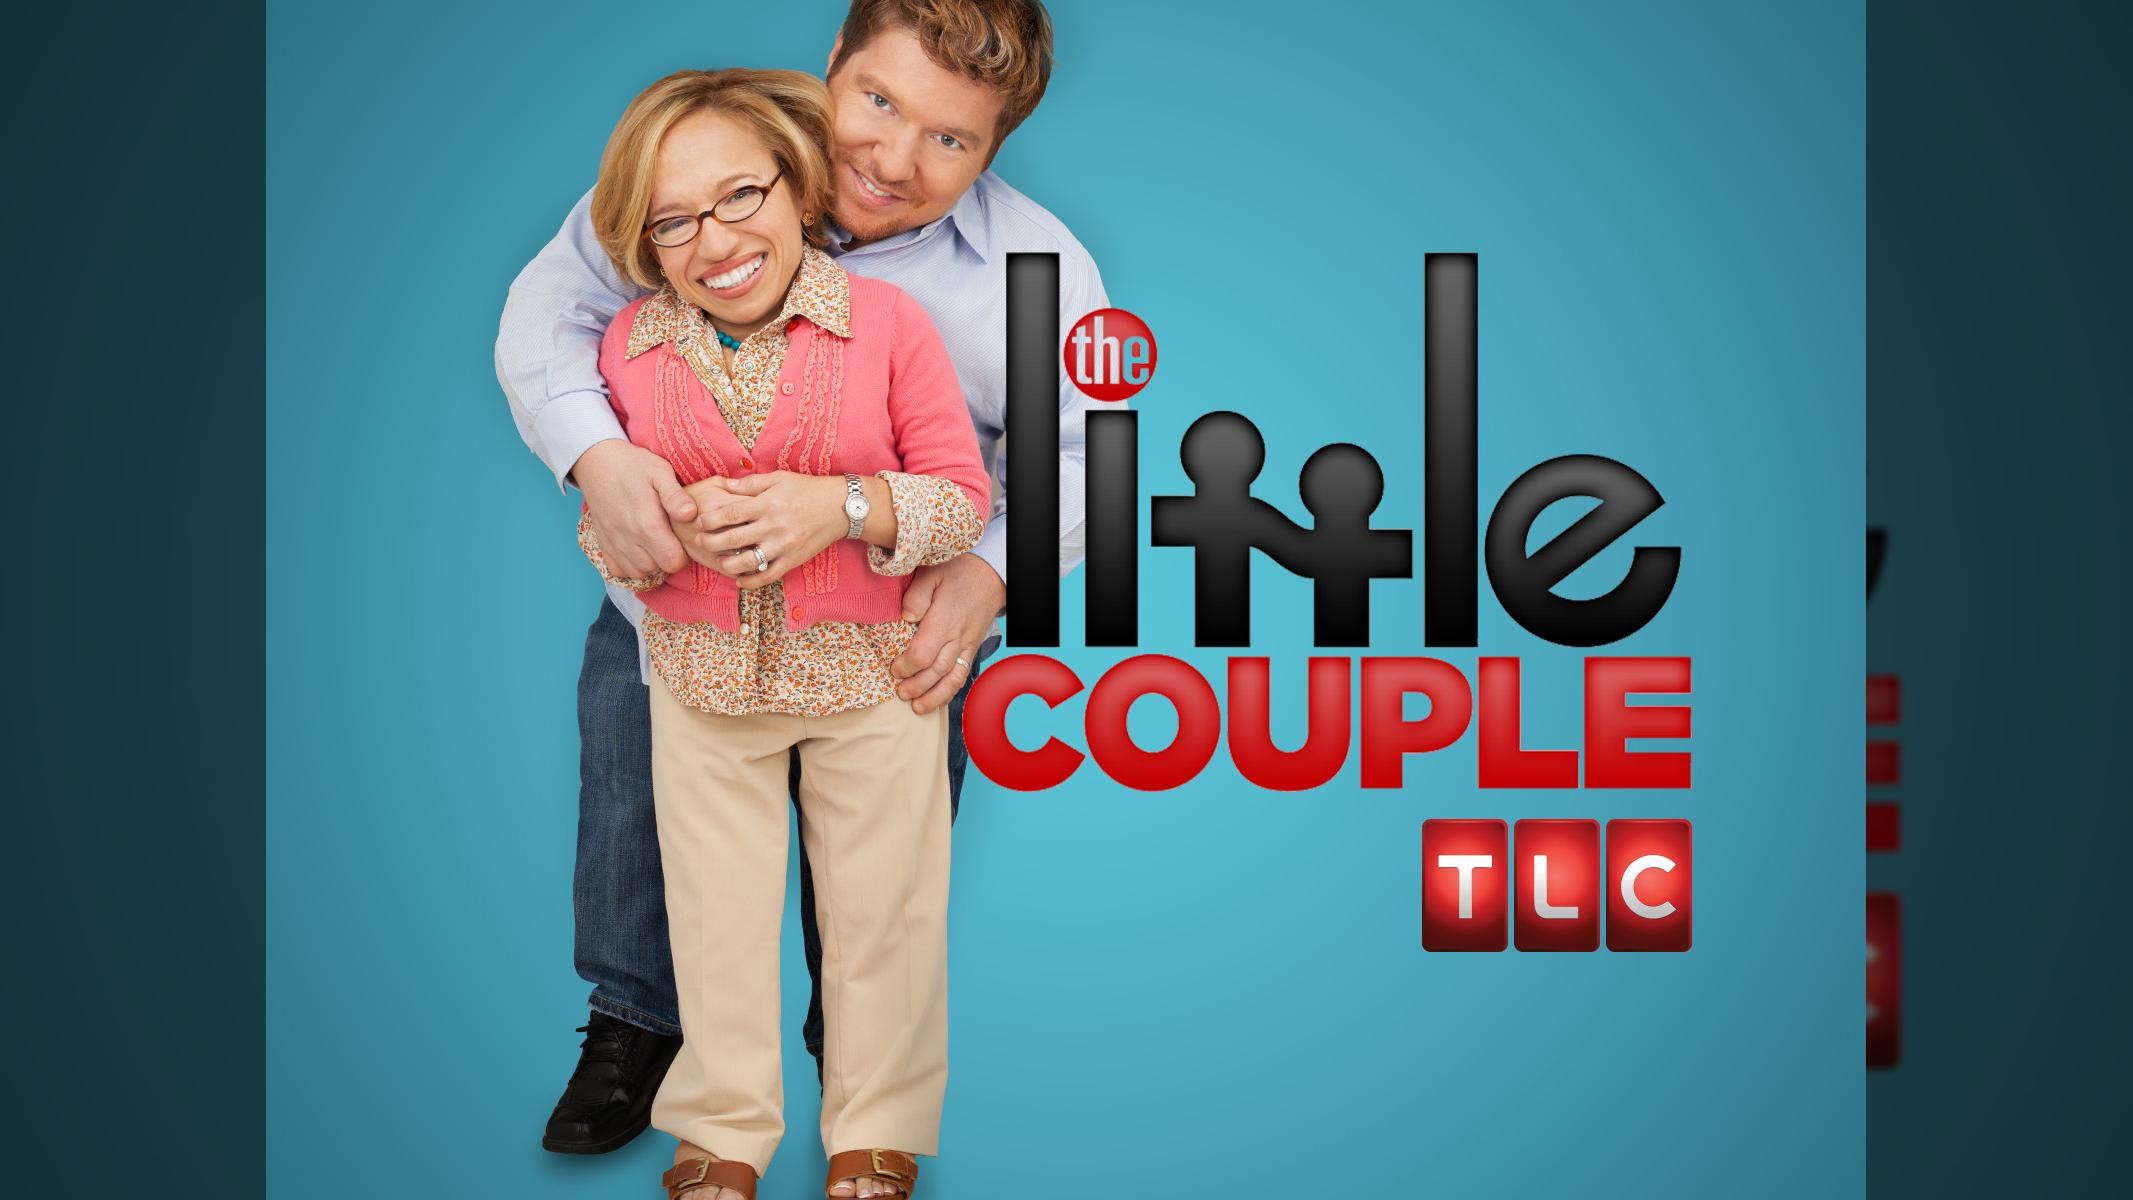 Stream And Watch TLC Online | Sling TV